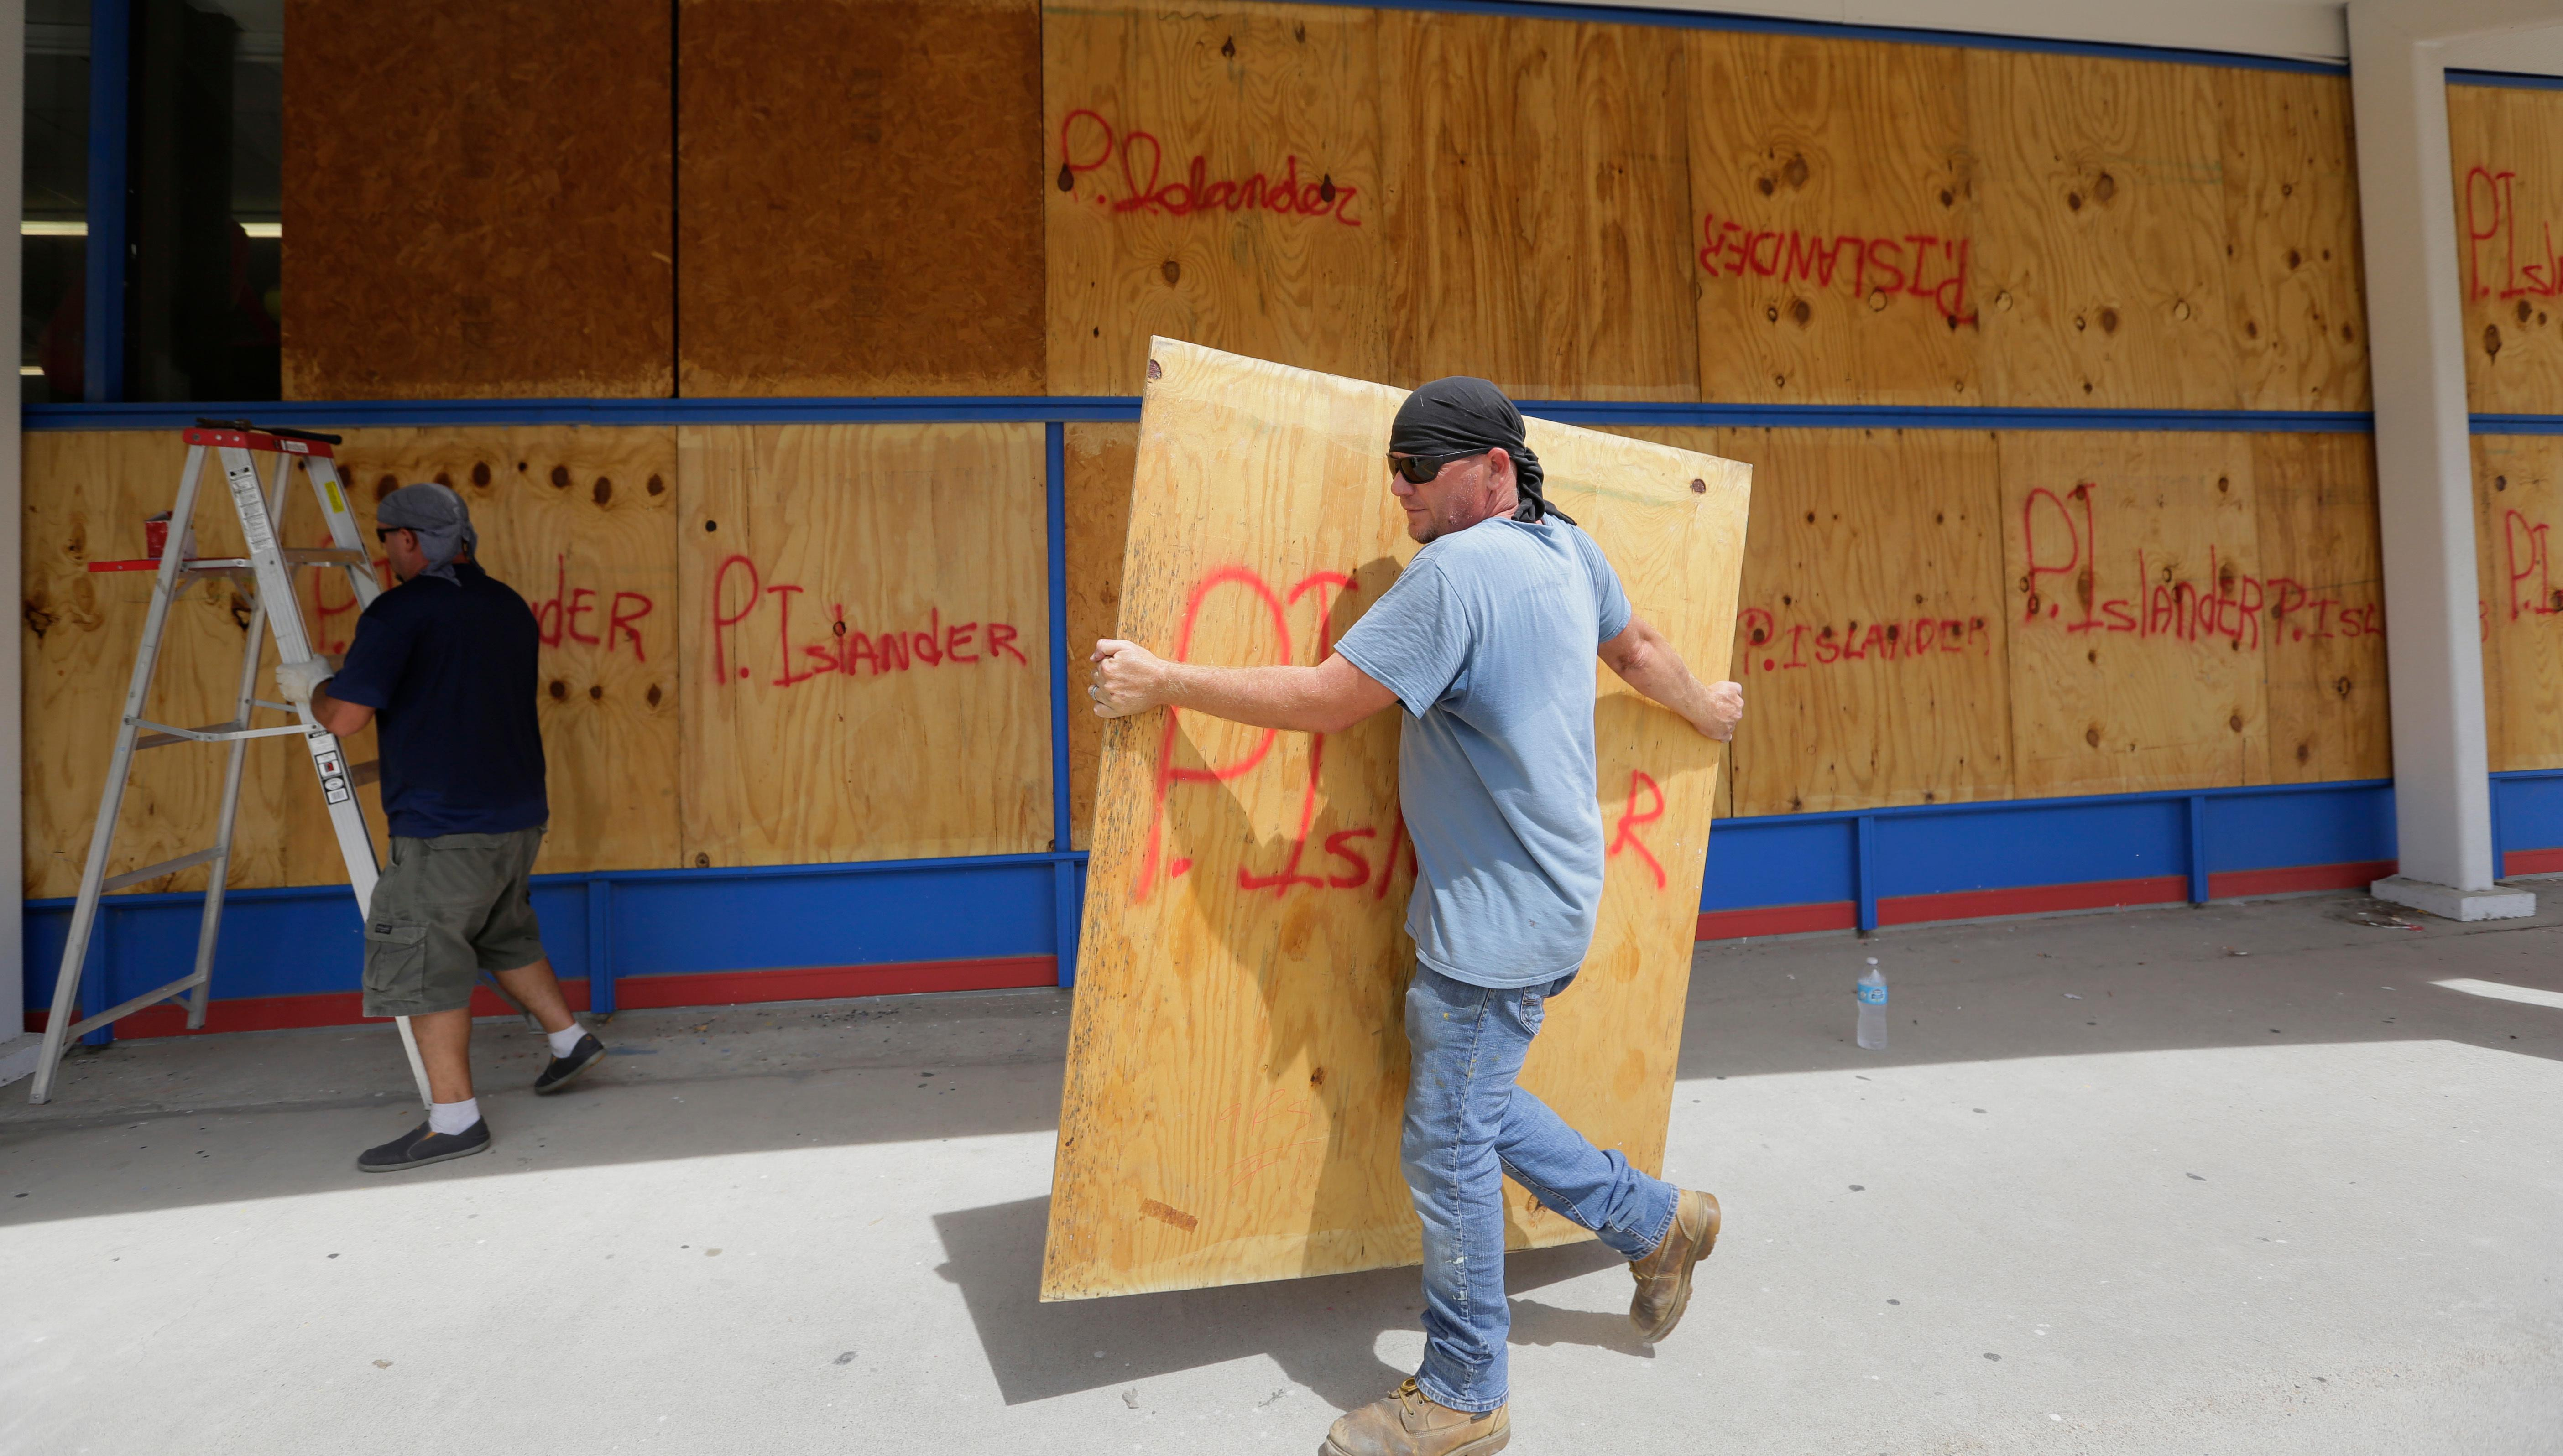 James Redford carries a sheet of plywood as he helps board up windows in preparation for Hurricane Harvey, Thursday, Aug. 24, 2017, in Corpus Christi, Texas. Two counties have ordered mandatory evacuations as Hurricane Harvey gathers strength as it drifts toward the Texas Gulf Coast.   (AP Photo/Eric Gay)